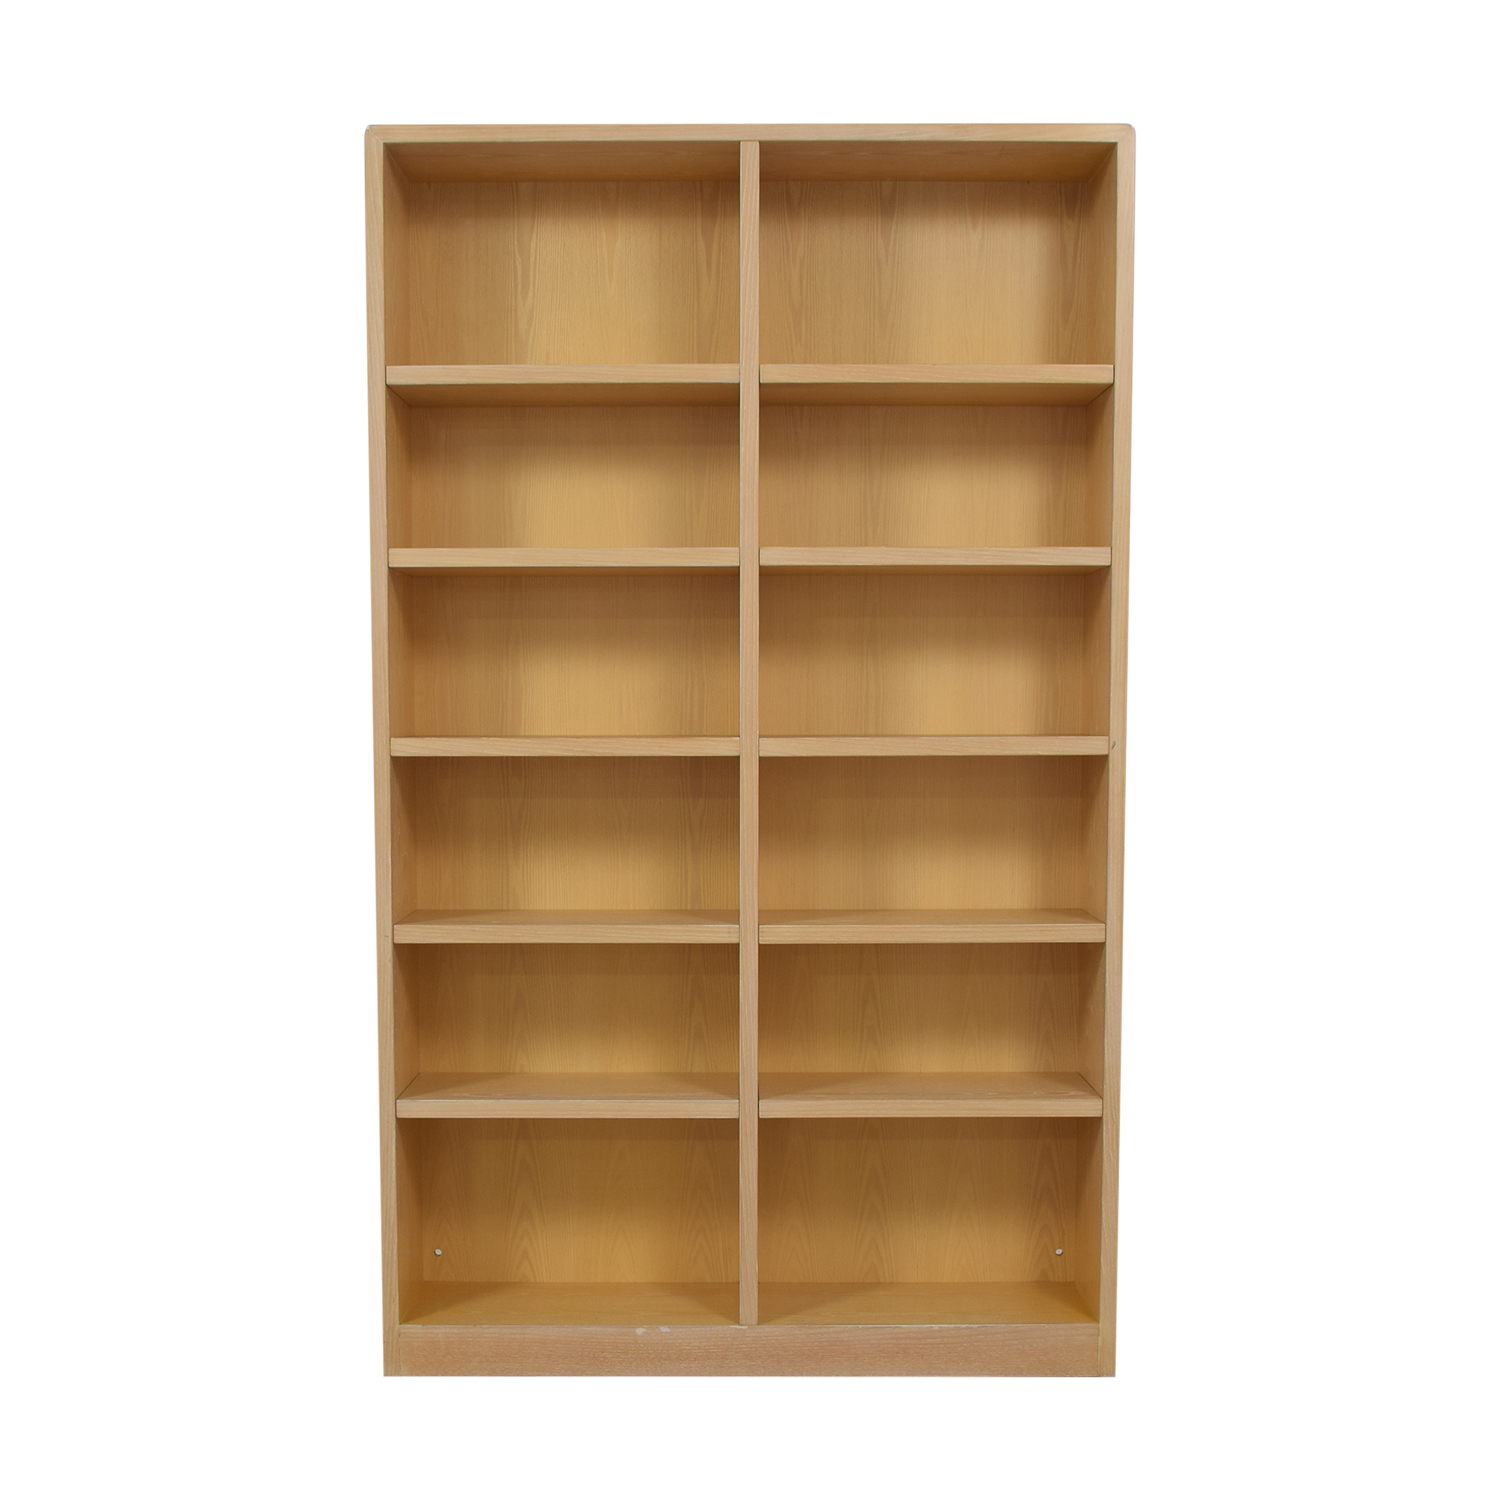 Twelve Shelf Double Bookcase dimensions